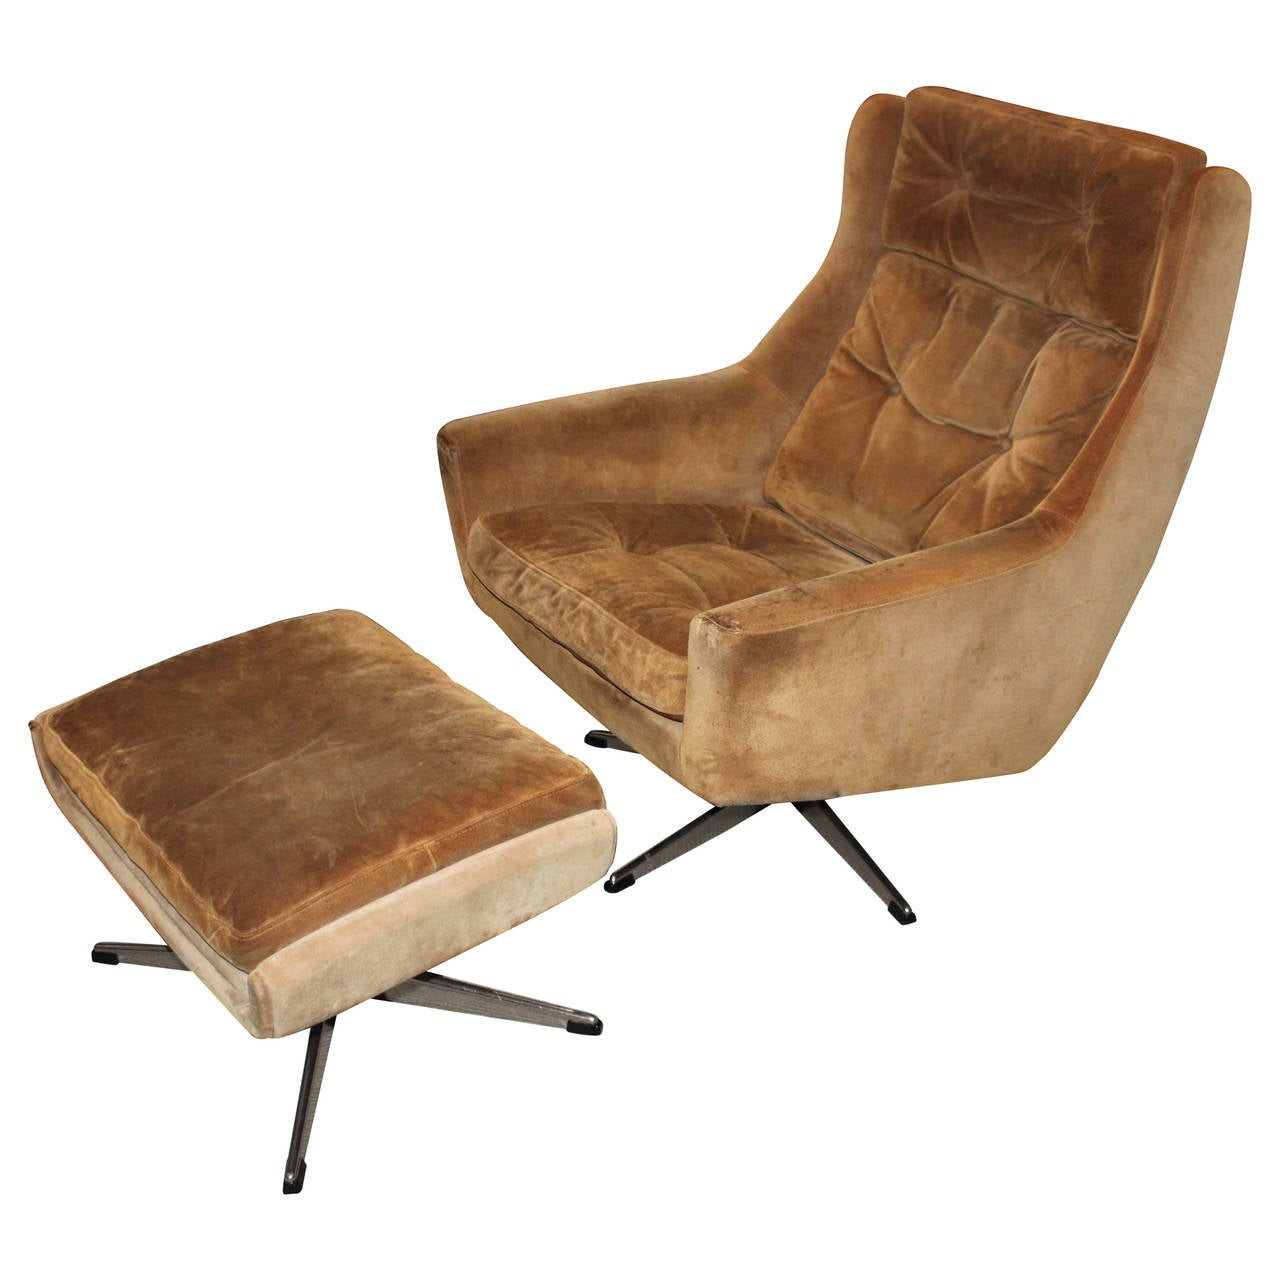 mid century modern overman lounge chair with ottoman at 1stdibs. Black Bedroom Furniture Sets. Home Design Ideas